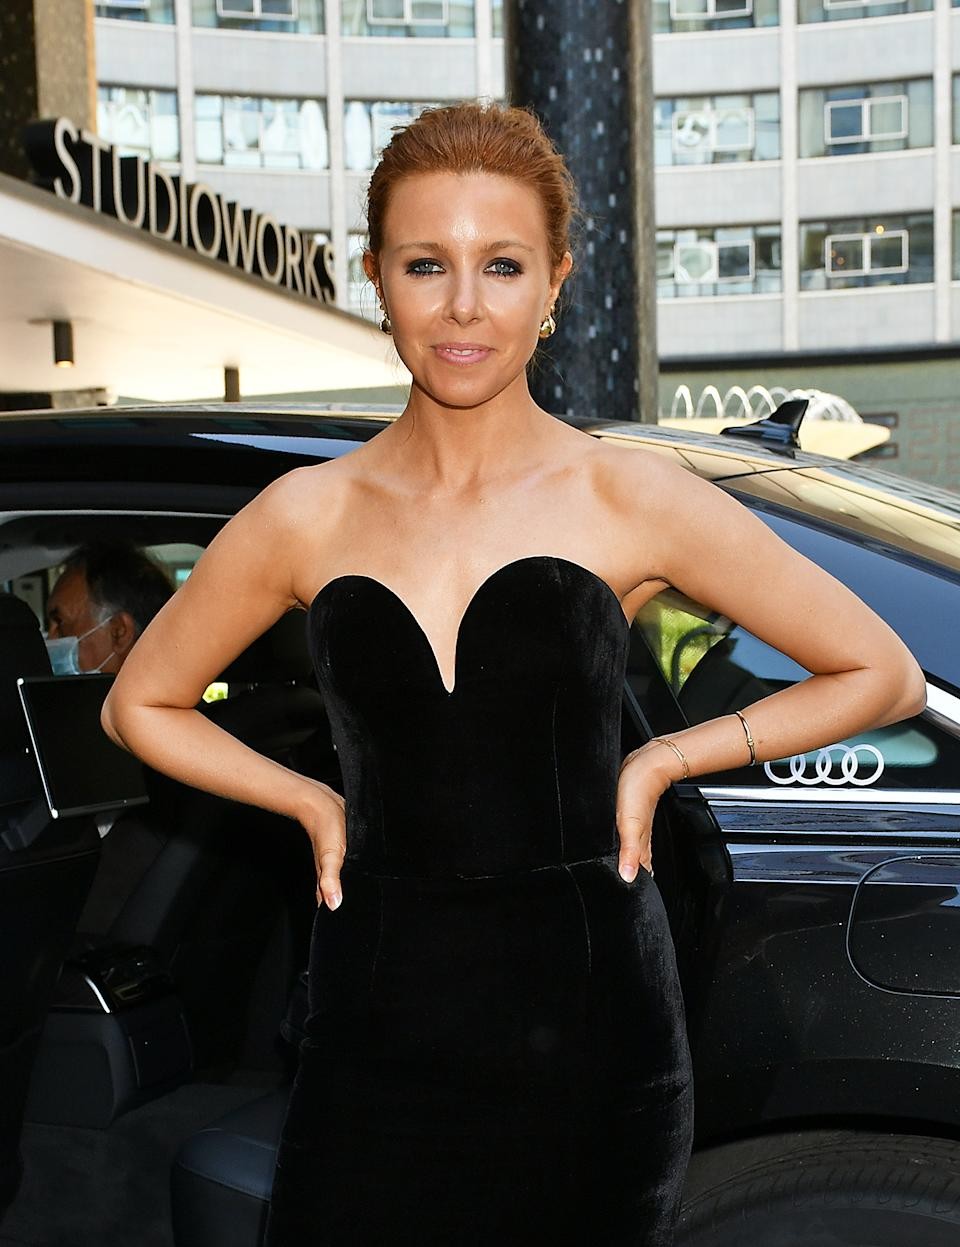 Stacey Dooley arrives in an Audi at the Virgin Media British Academy Television Awards 2020 at Television Centre on July 31, 2020 in London, England. (Photo by David M. Benett/Dave Benett/Getty Images for Audi UK)